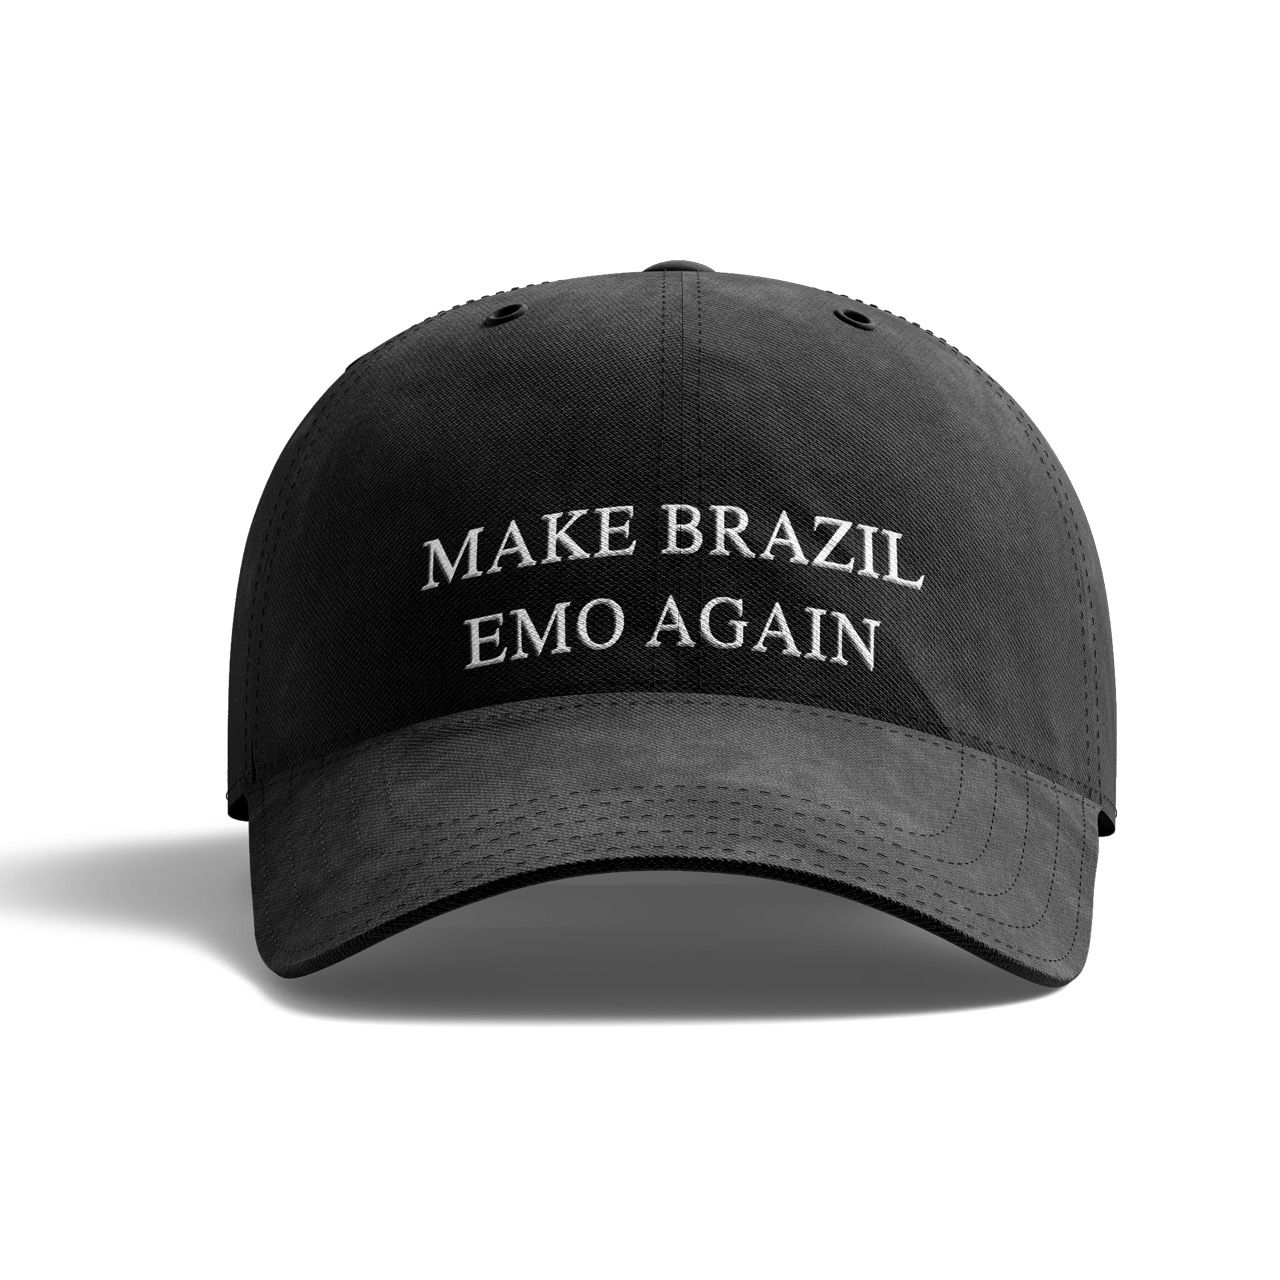 The Maine - Make Brazil Emo Again [Boné] + Pôster Autografado